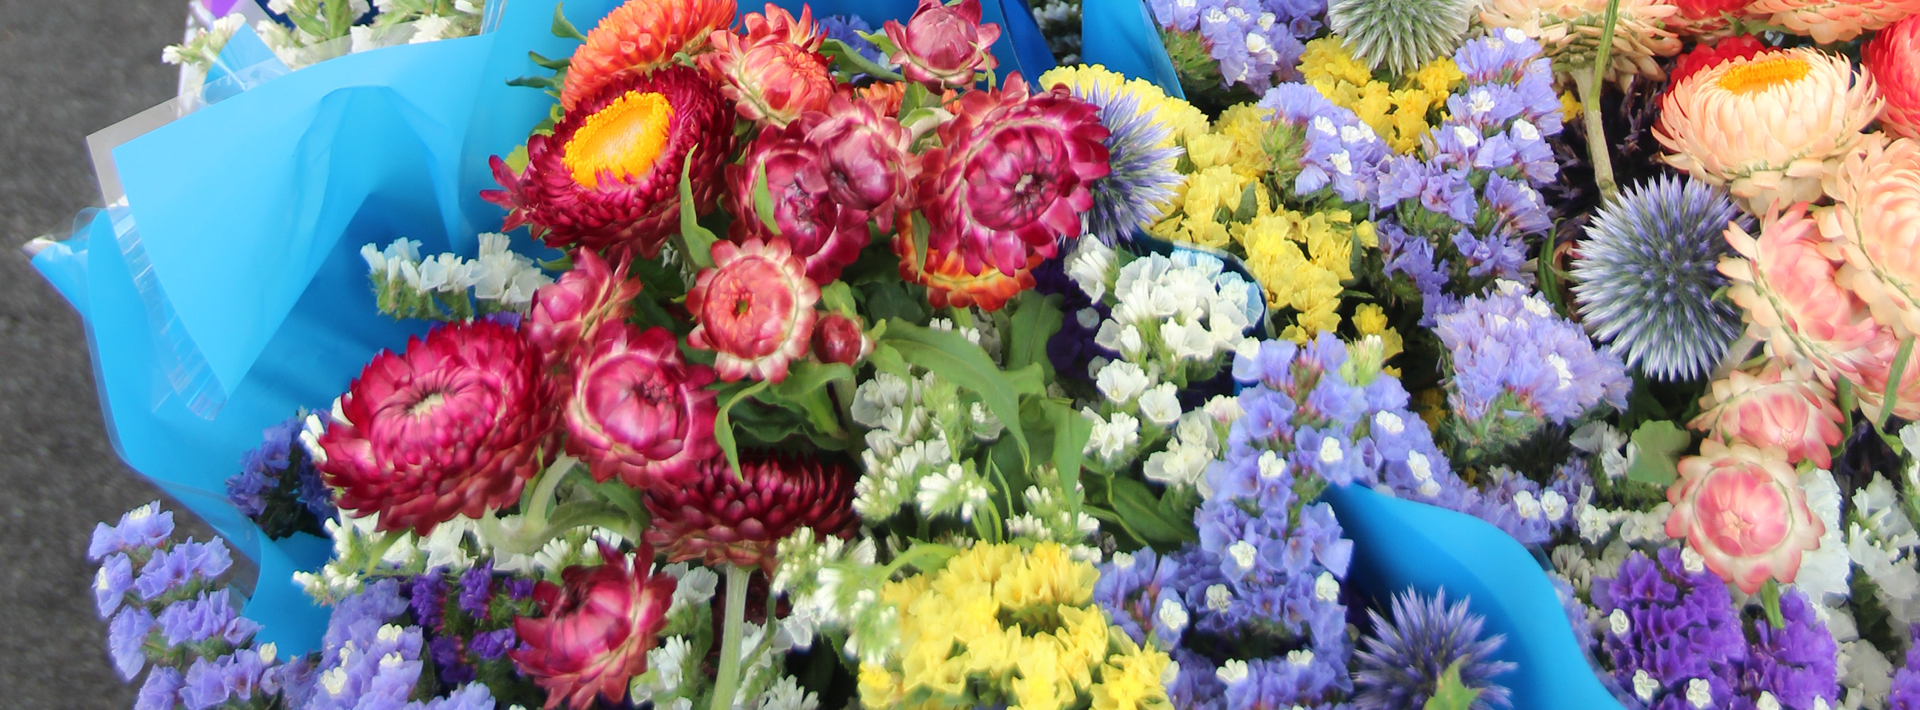 flowers at the farmers market